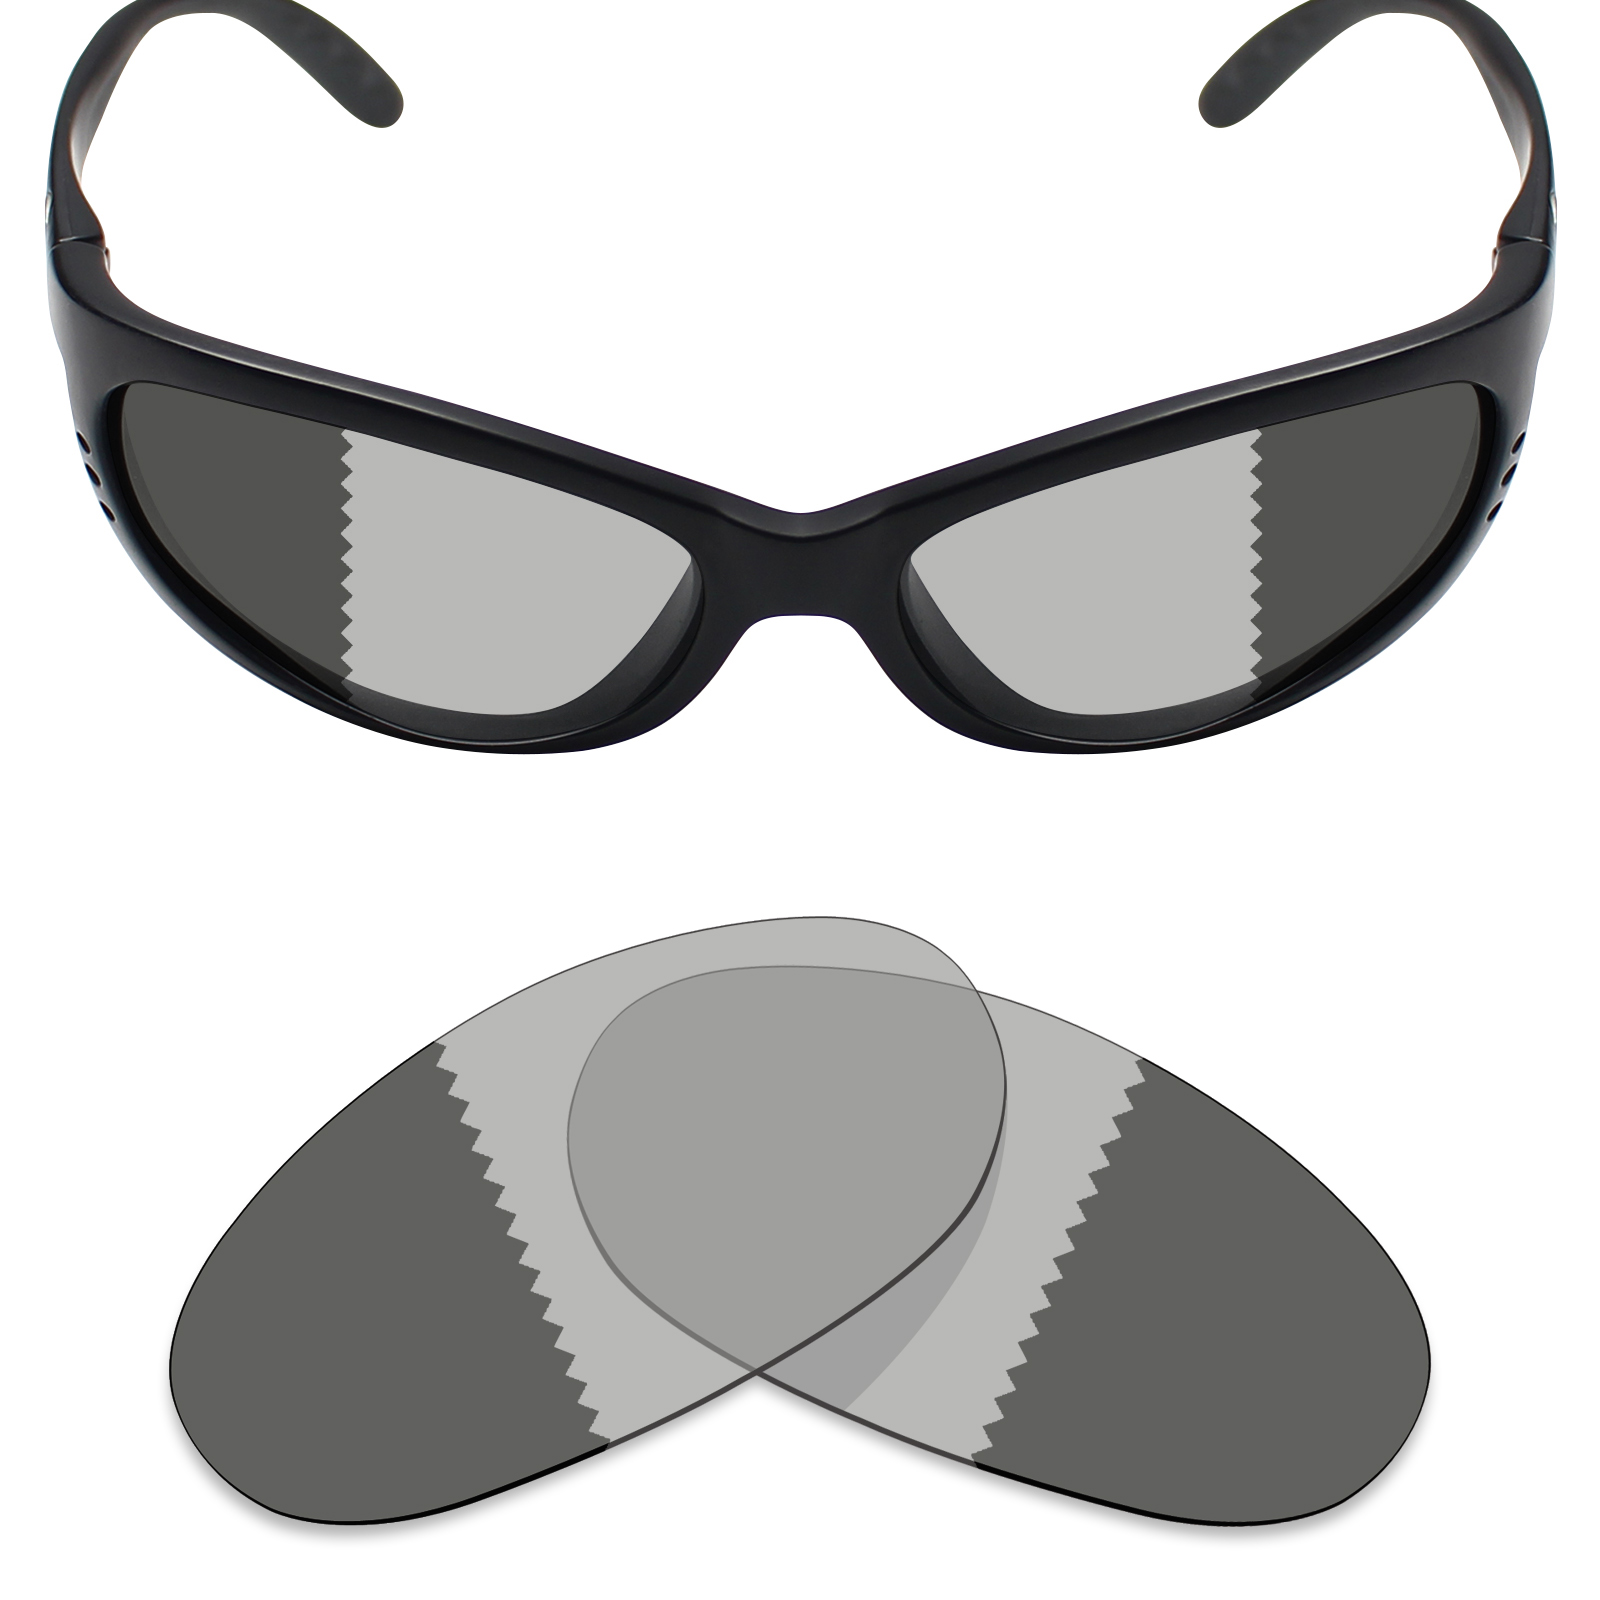 57affefe59a6 Mryok Anti-Scratch Polarized Replacement Lense for Costa Del Mar Fathom -  Opt.